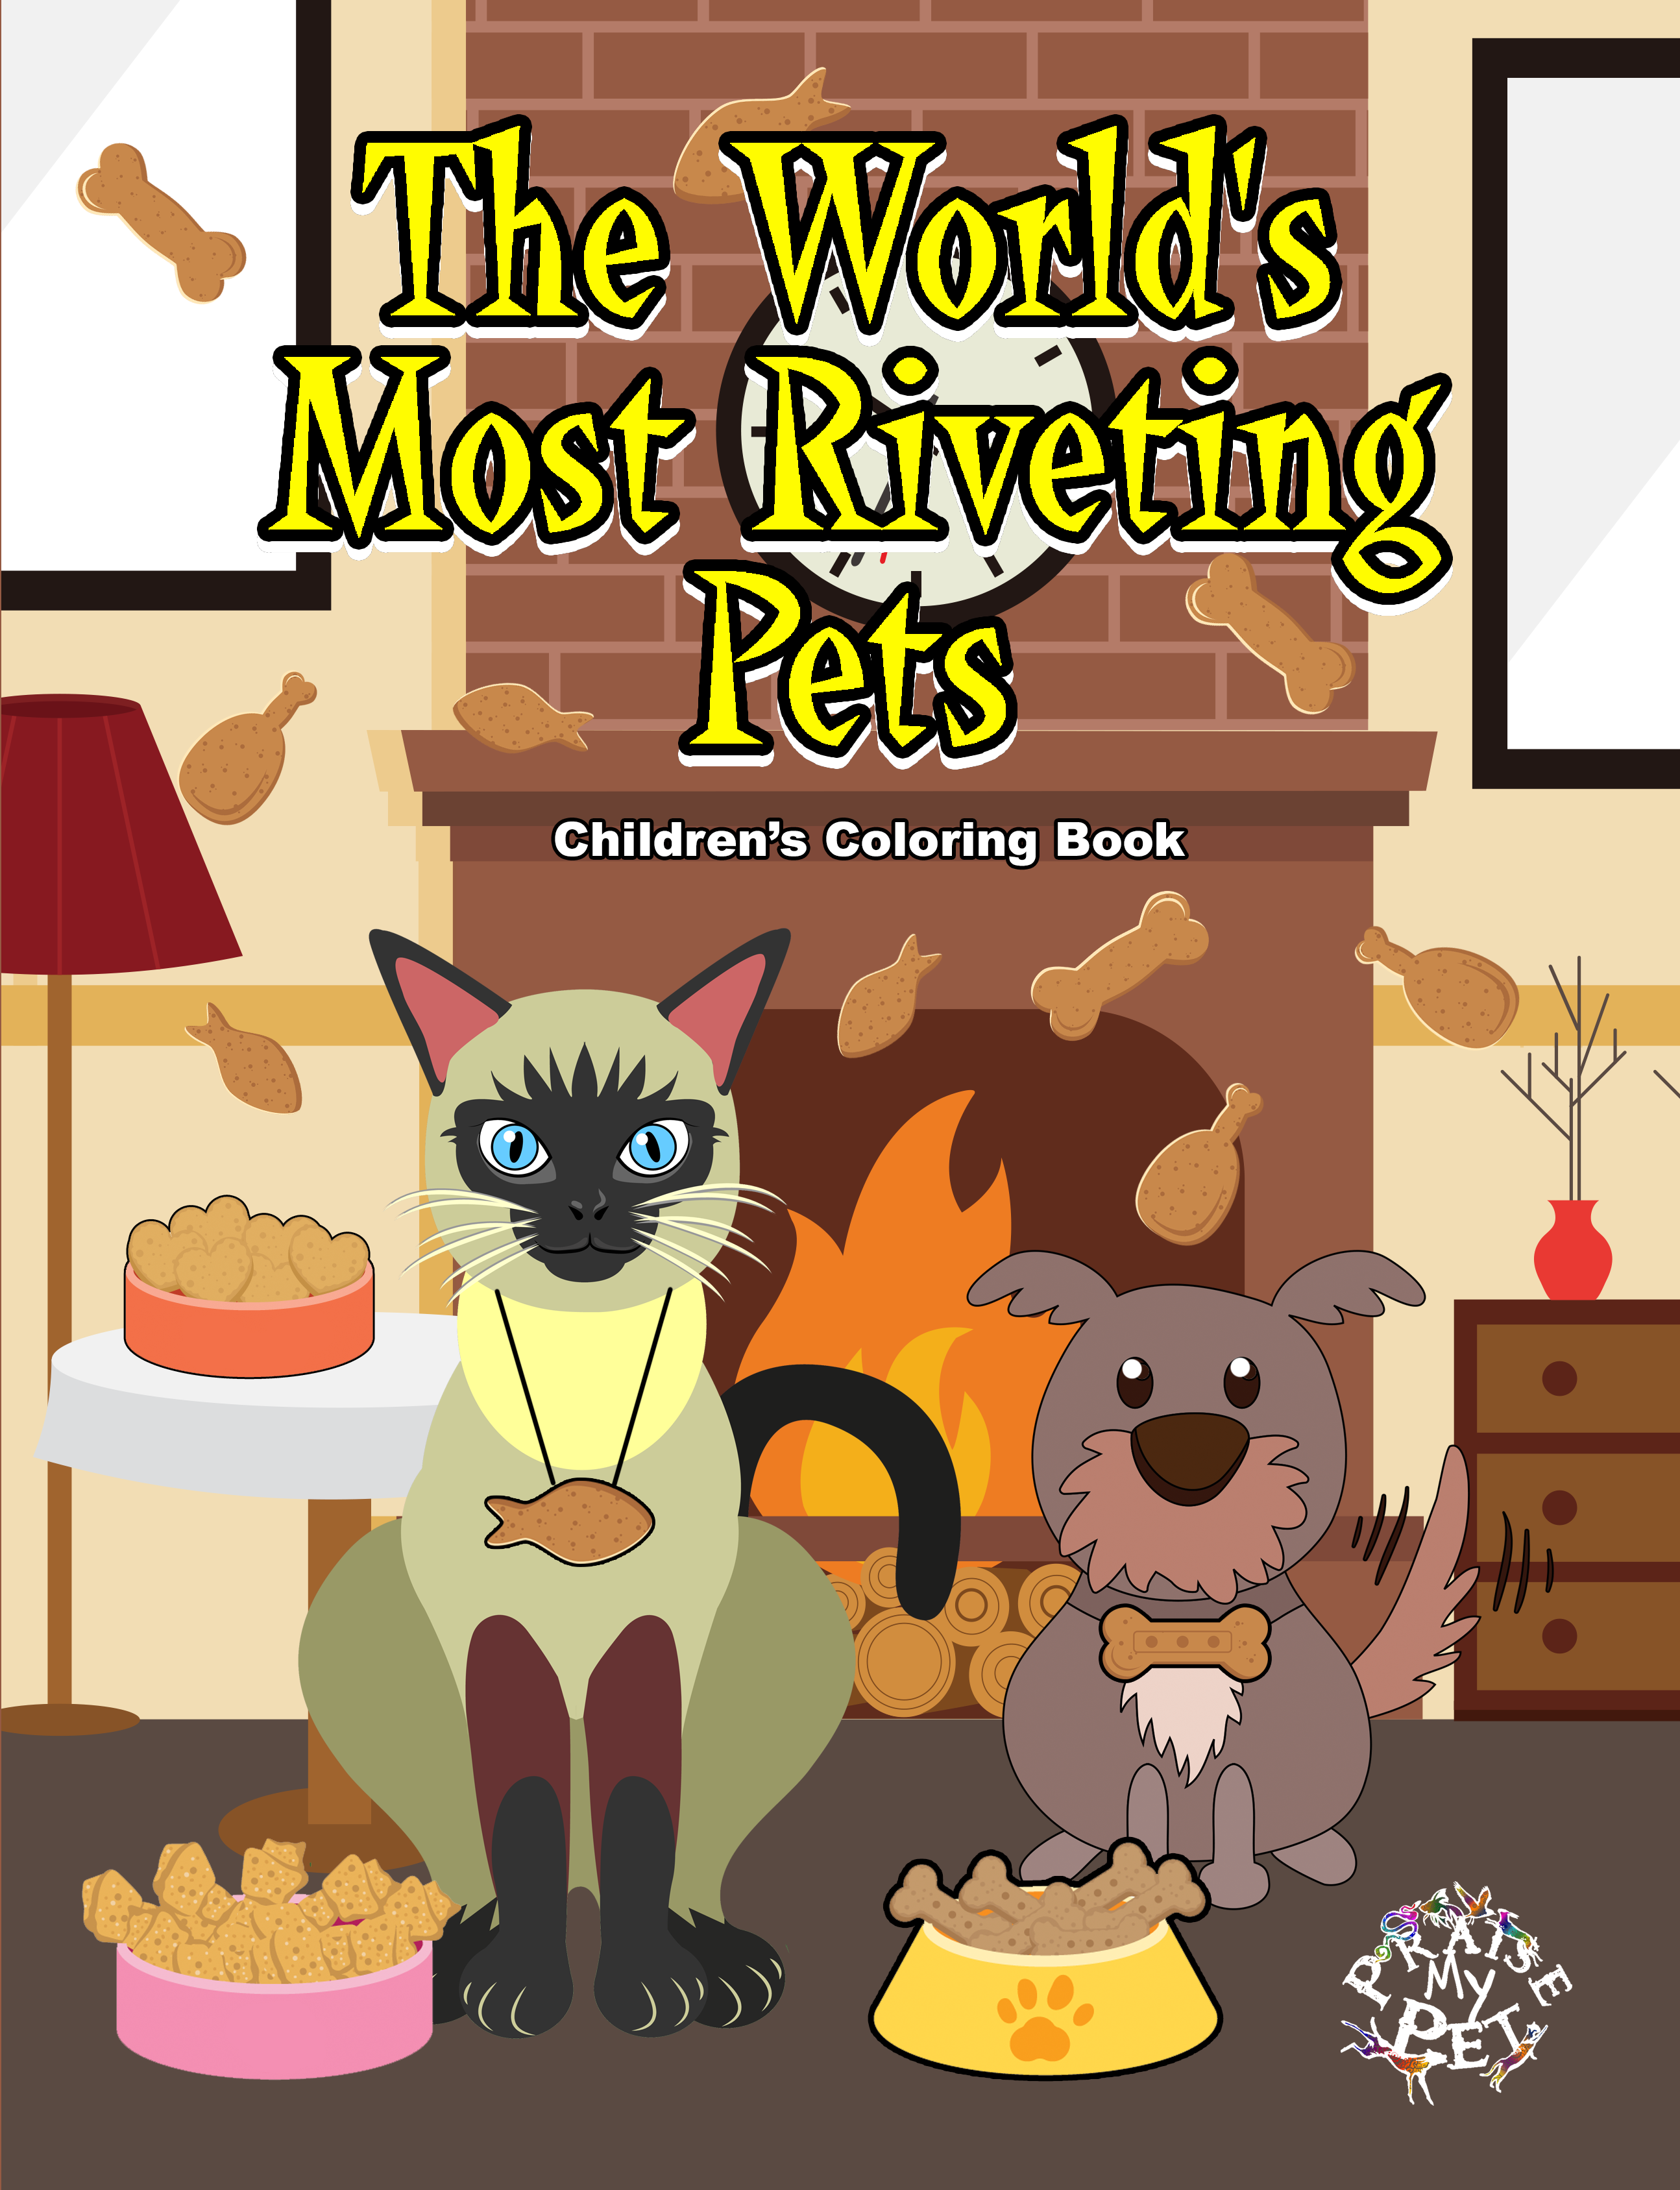 The World's Most Riveting Pets: Children's Coloring Book